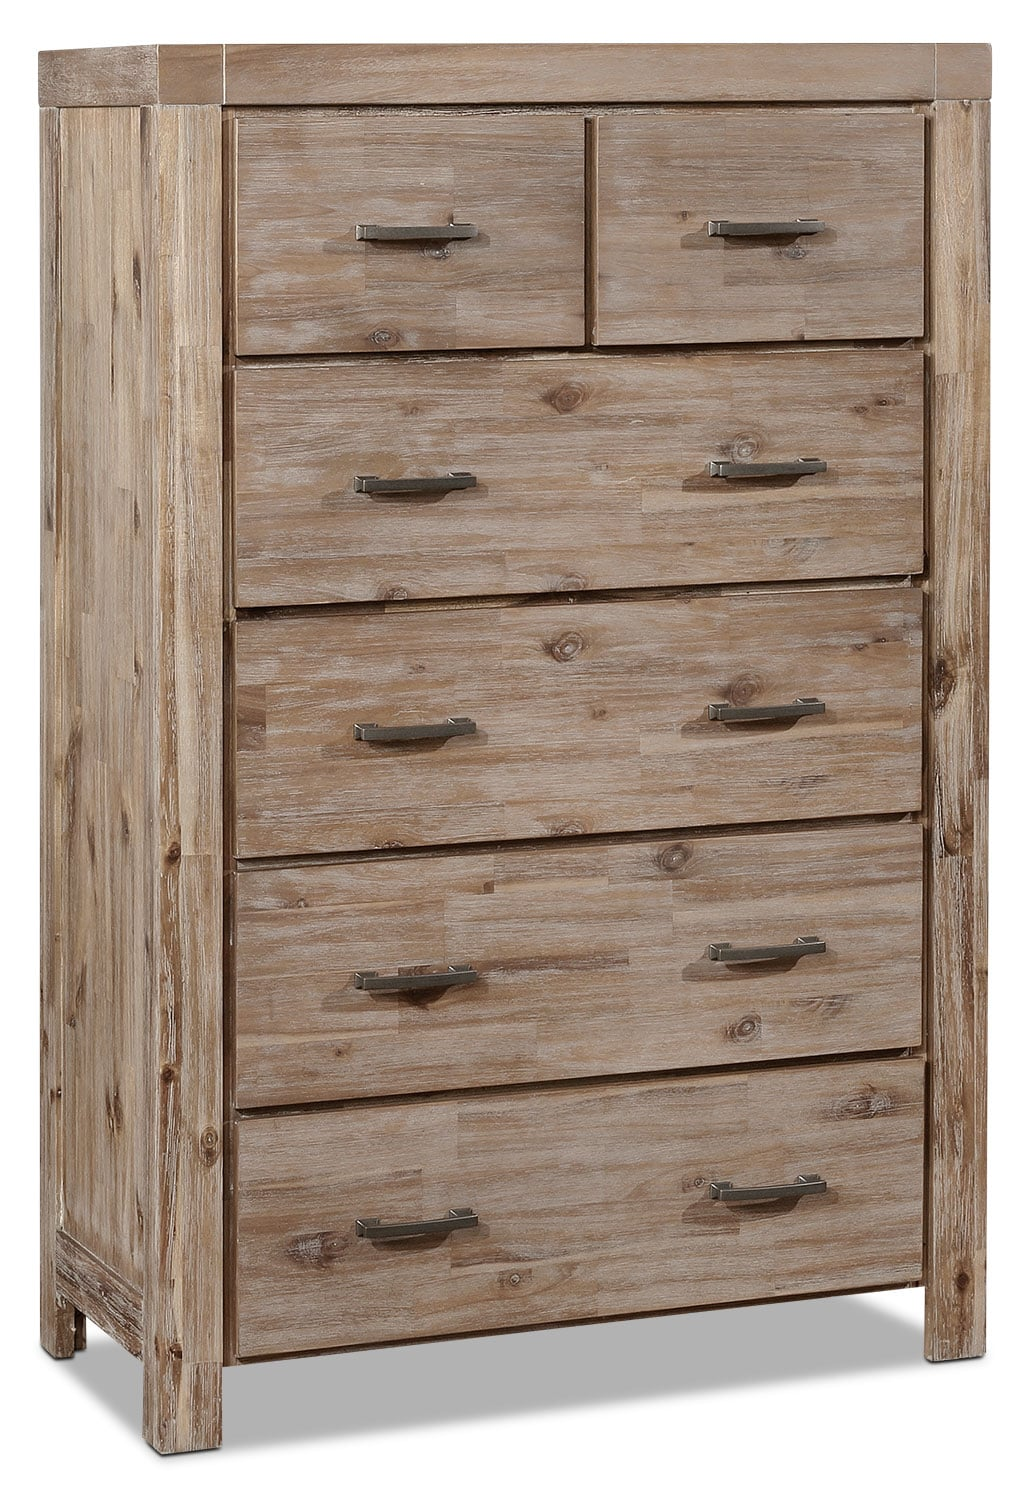 Bedroom Furniture - Acadia Chest